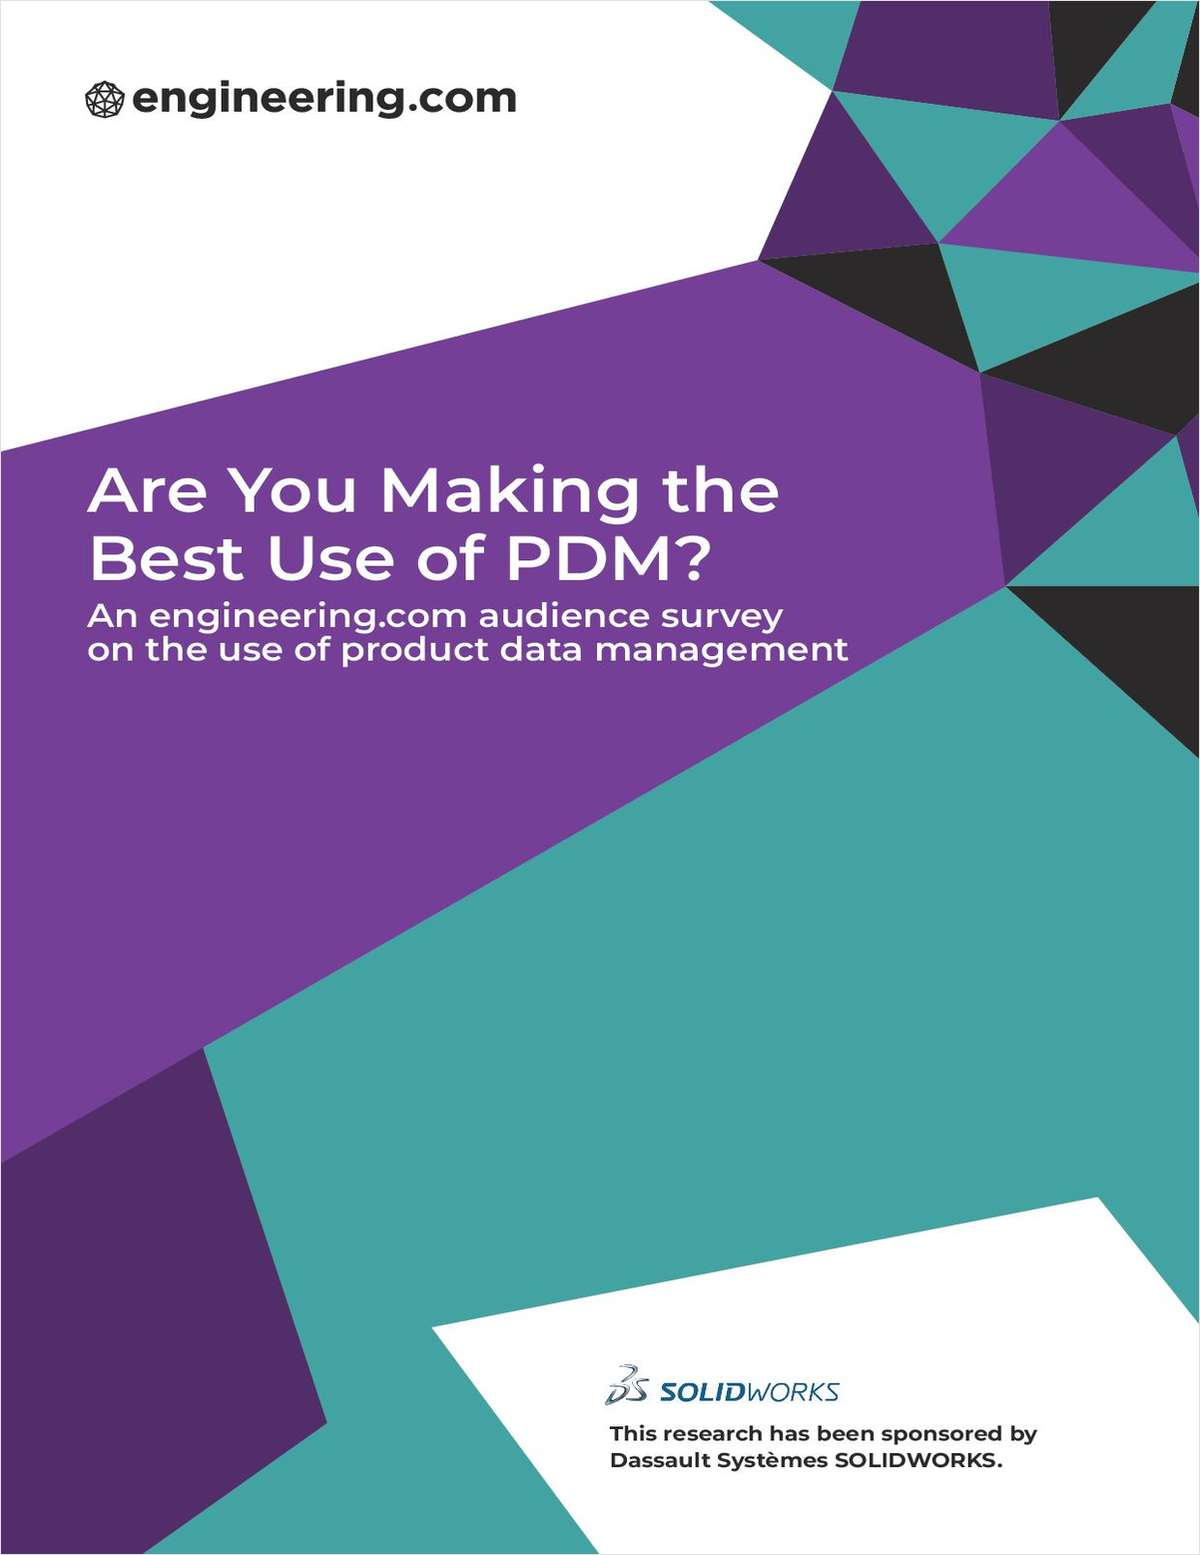 Research Report - Are You Making the Best Use of PDM?